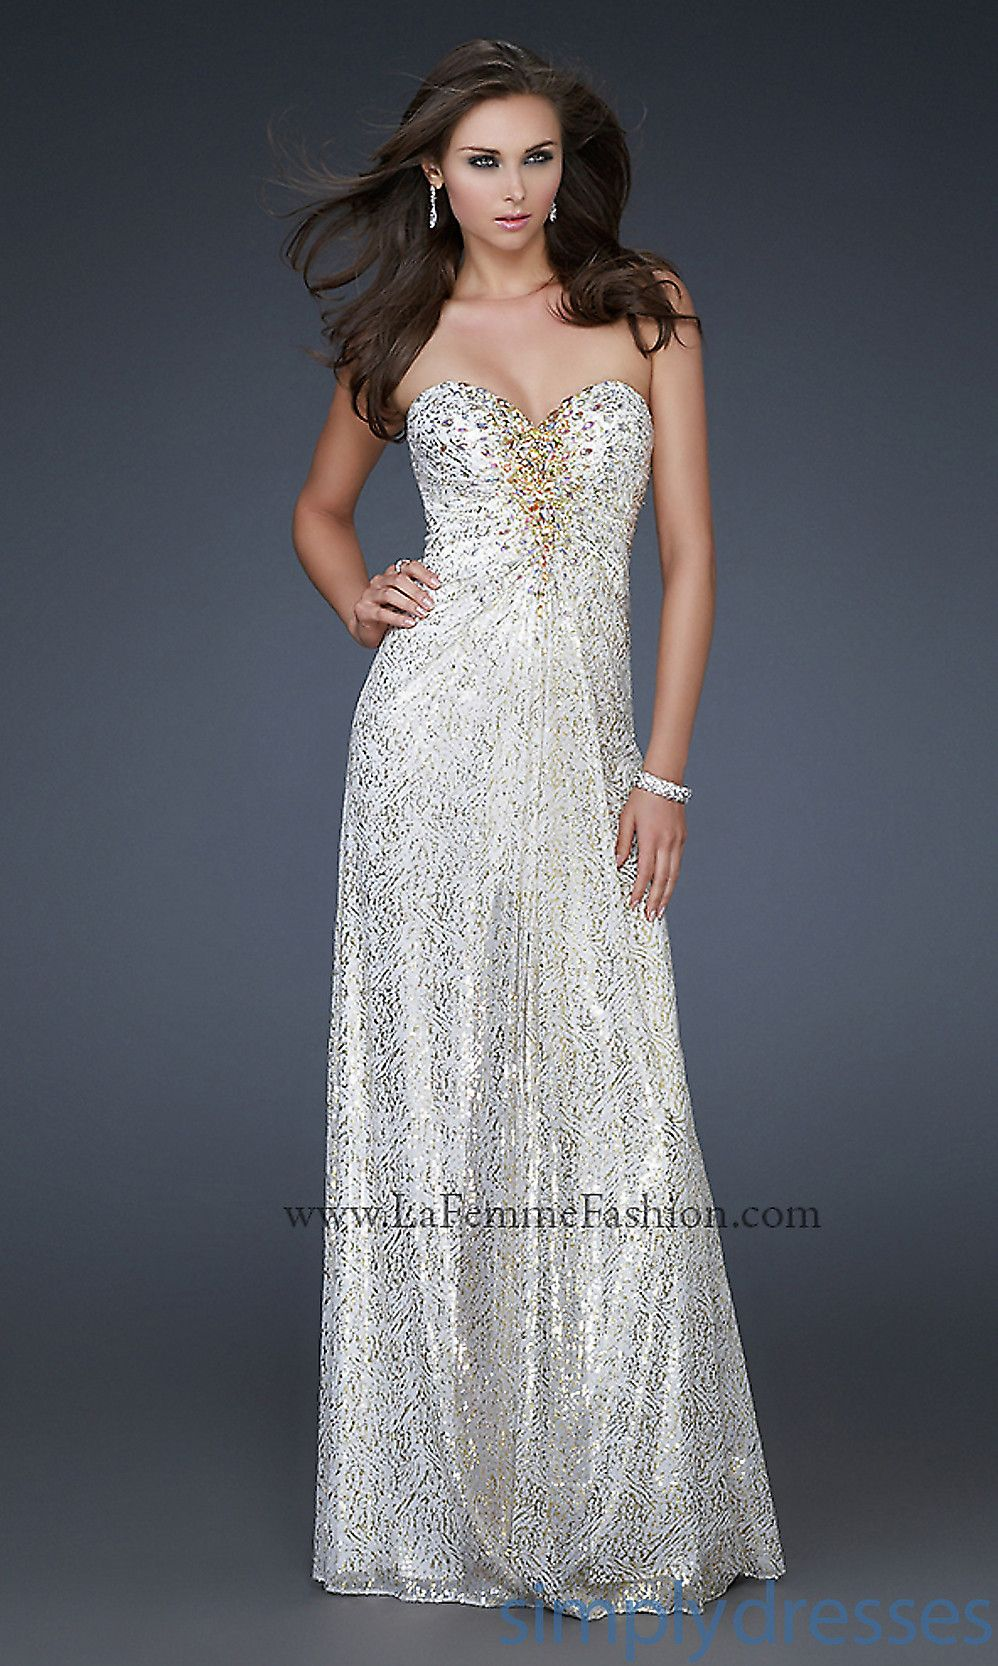 White and gold gowns strapless sweetheart gowns simply dresses